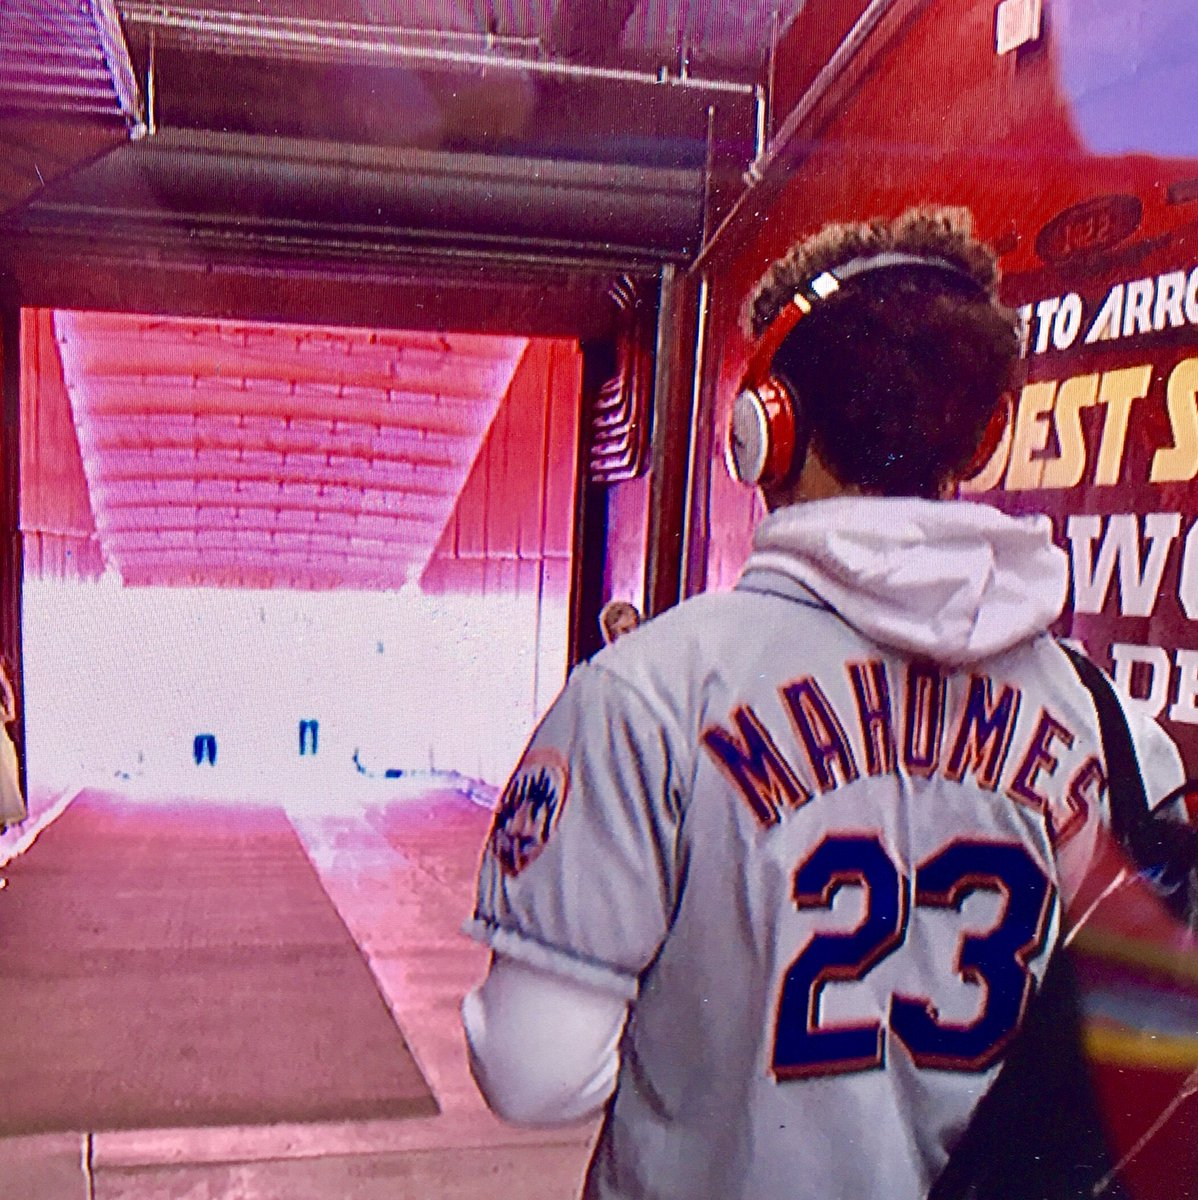 096673ad341 Patrick Mahomes showing up to Arrowhead in a Mets jersey — a salute to his  father, Pat, who played Major League Baseball from 1992 to 2003.